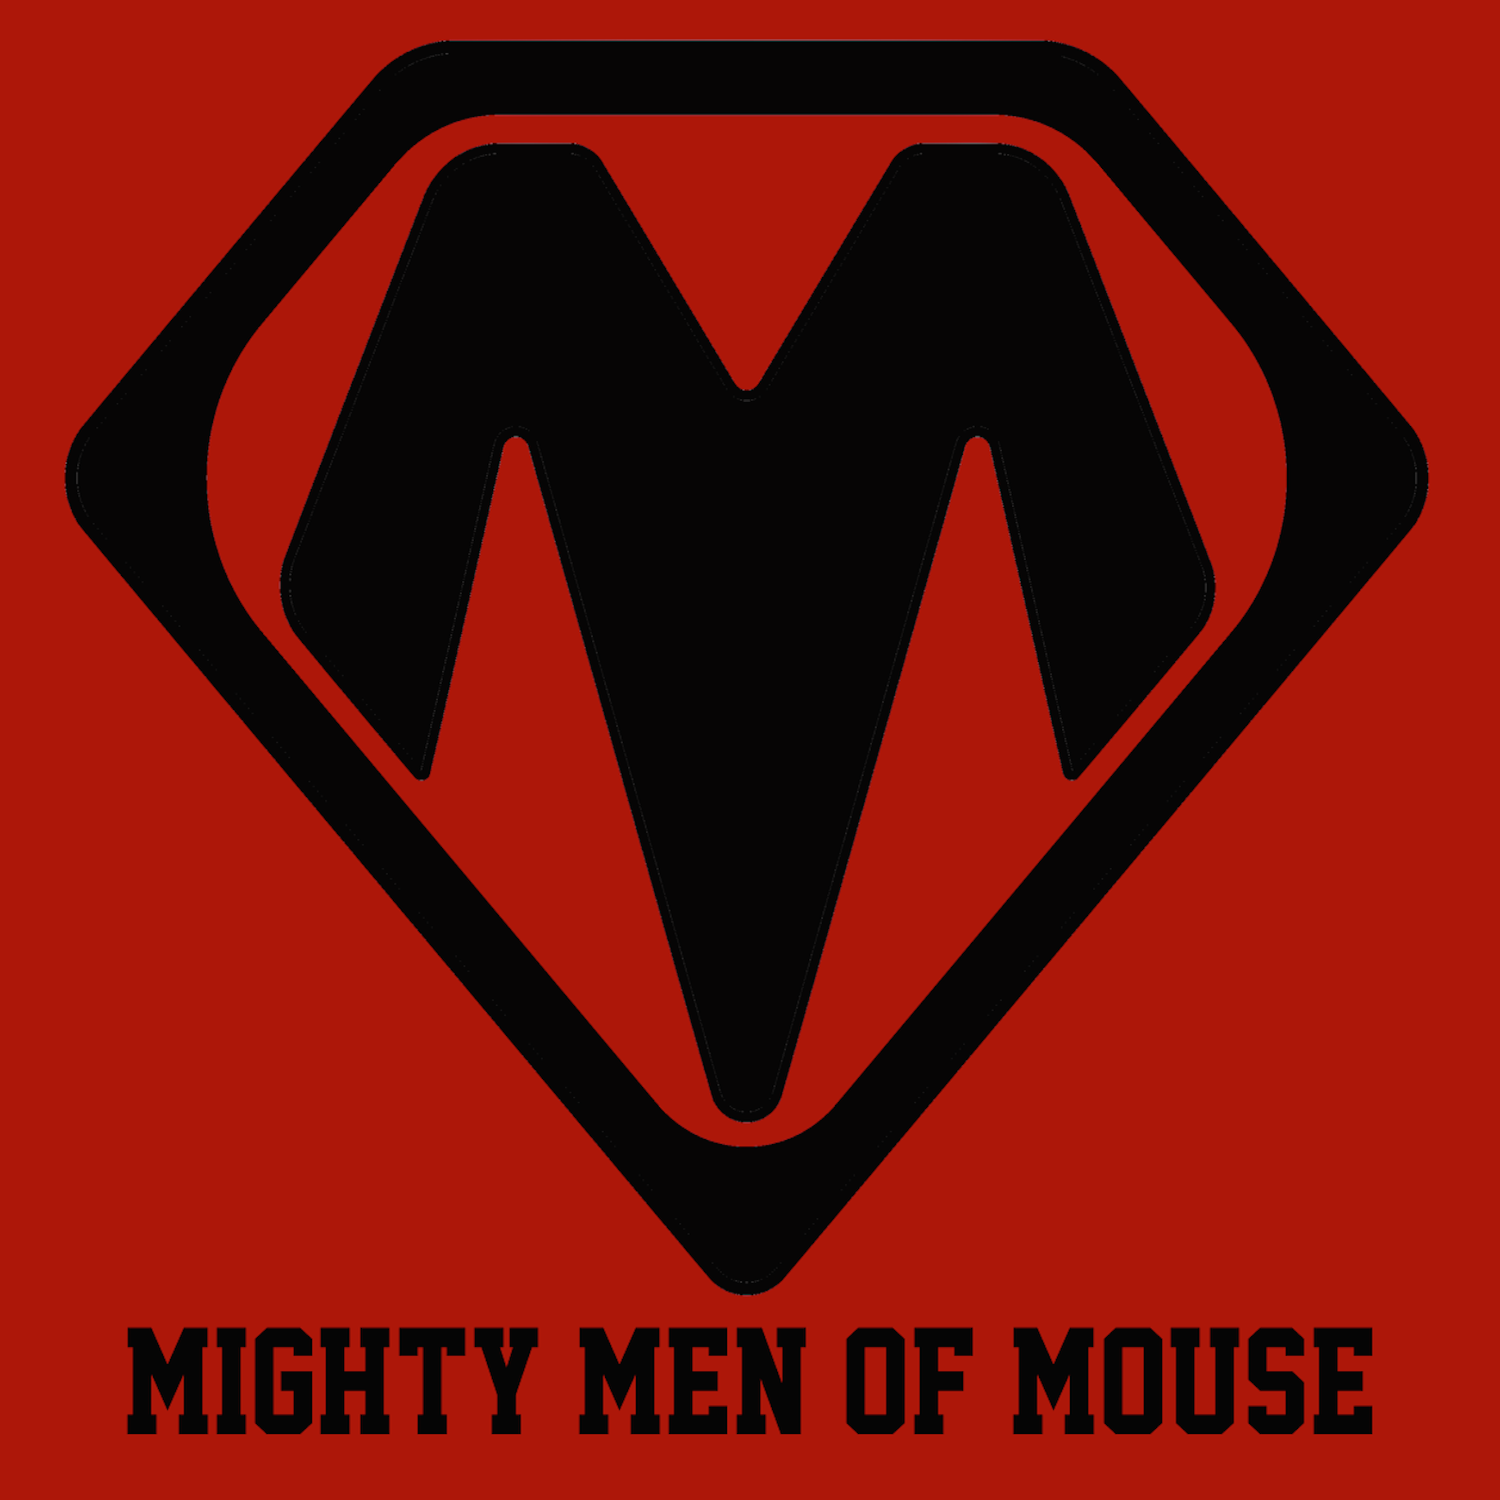 Mighty Men of Mouse: Episode 0393 -- 2019 Gallimaufry show art